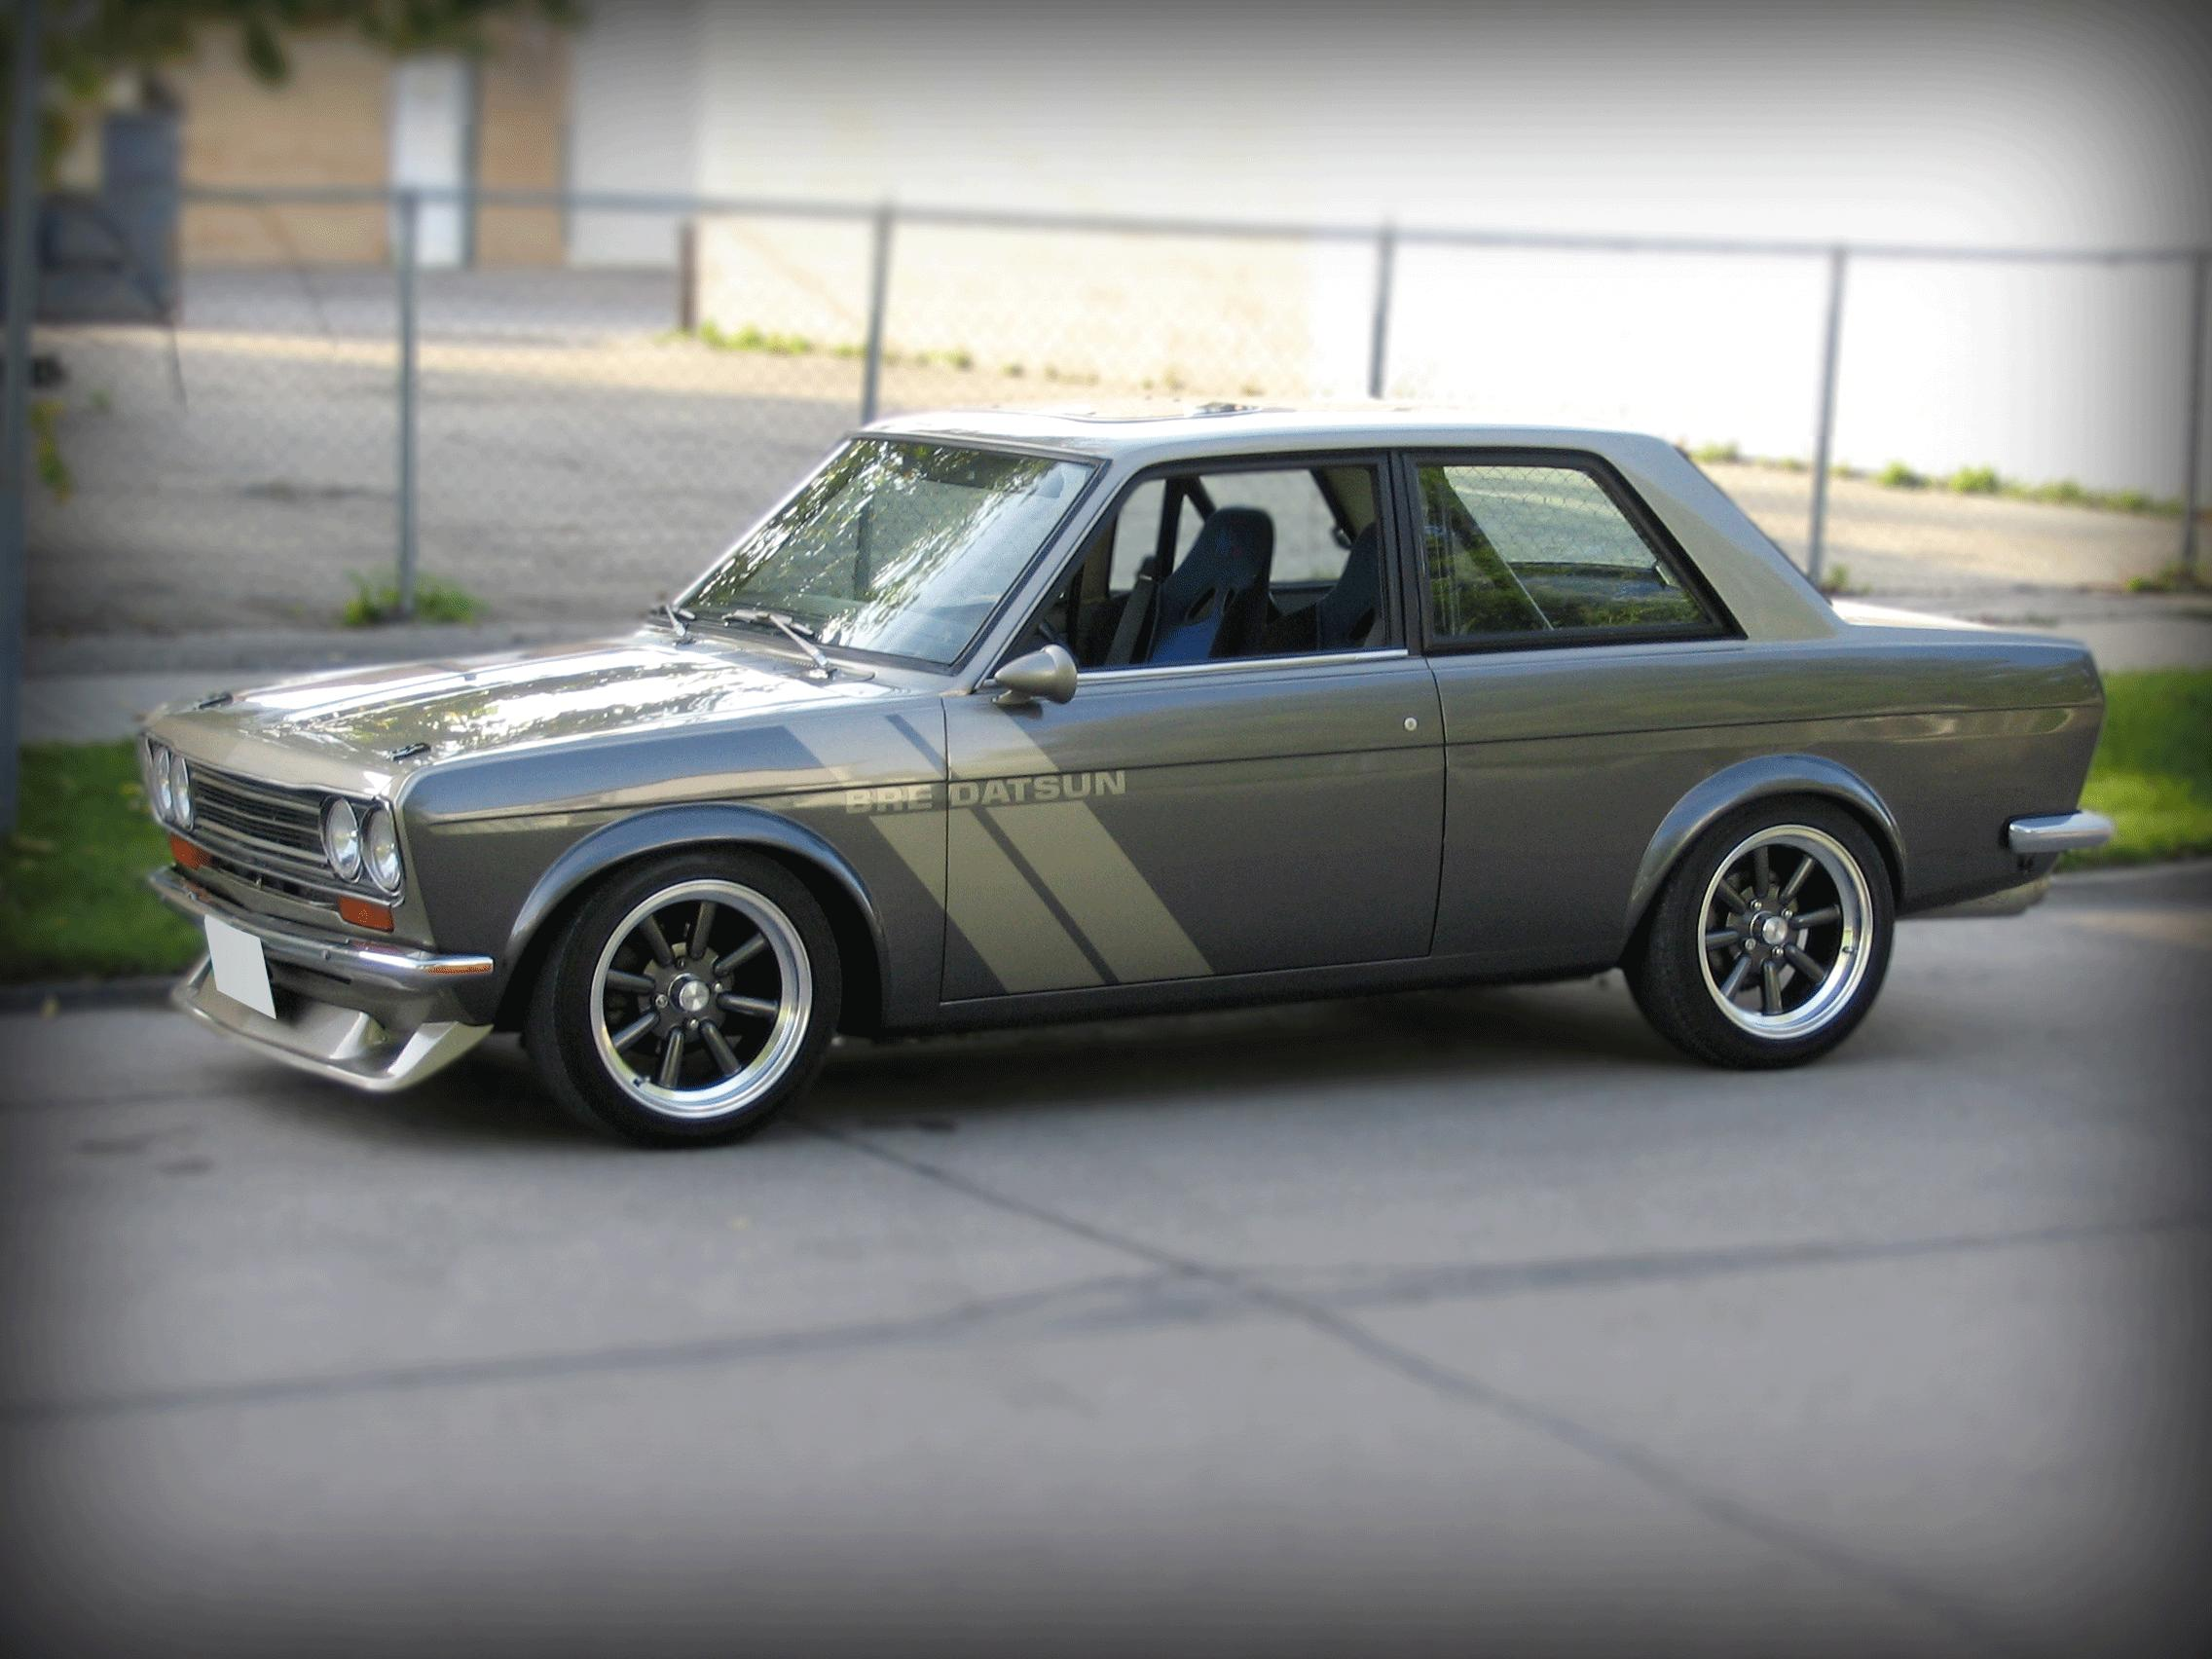 zimcam 1971 Datsun 510 Specs Photos Modification Info at